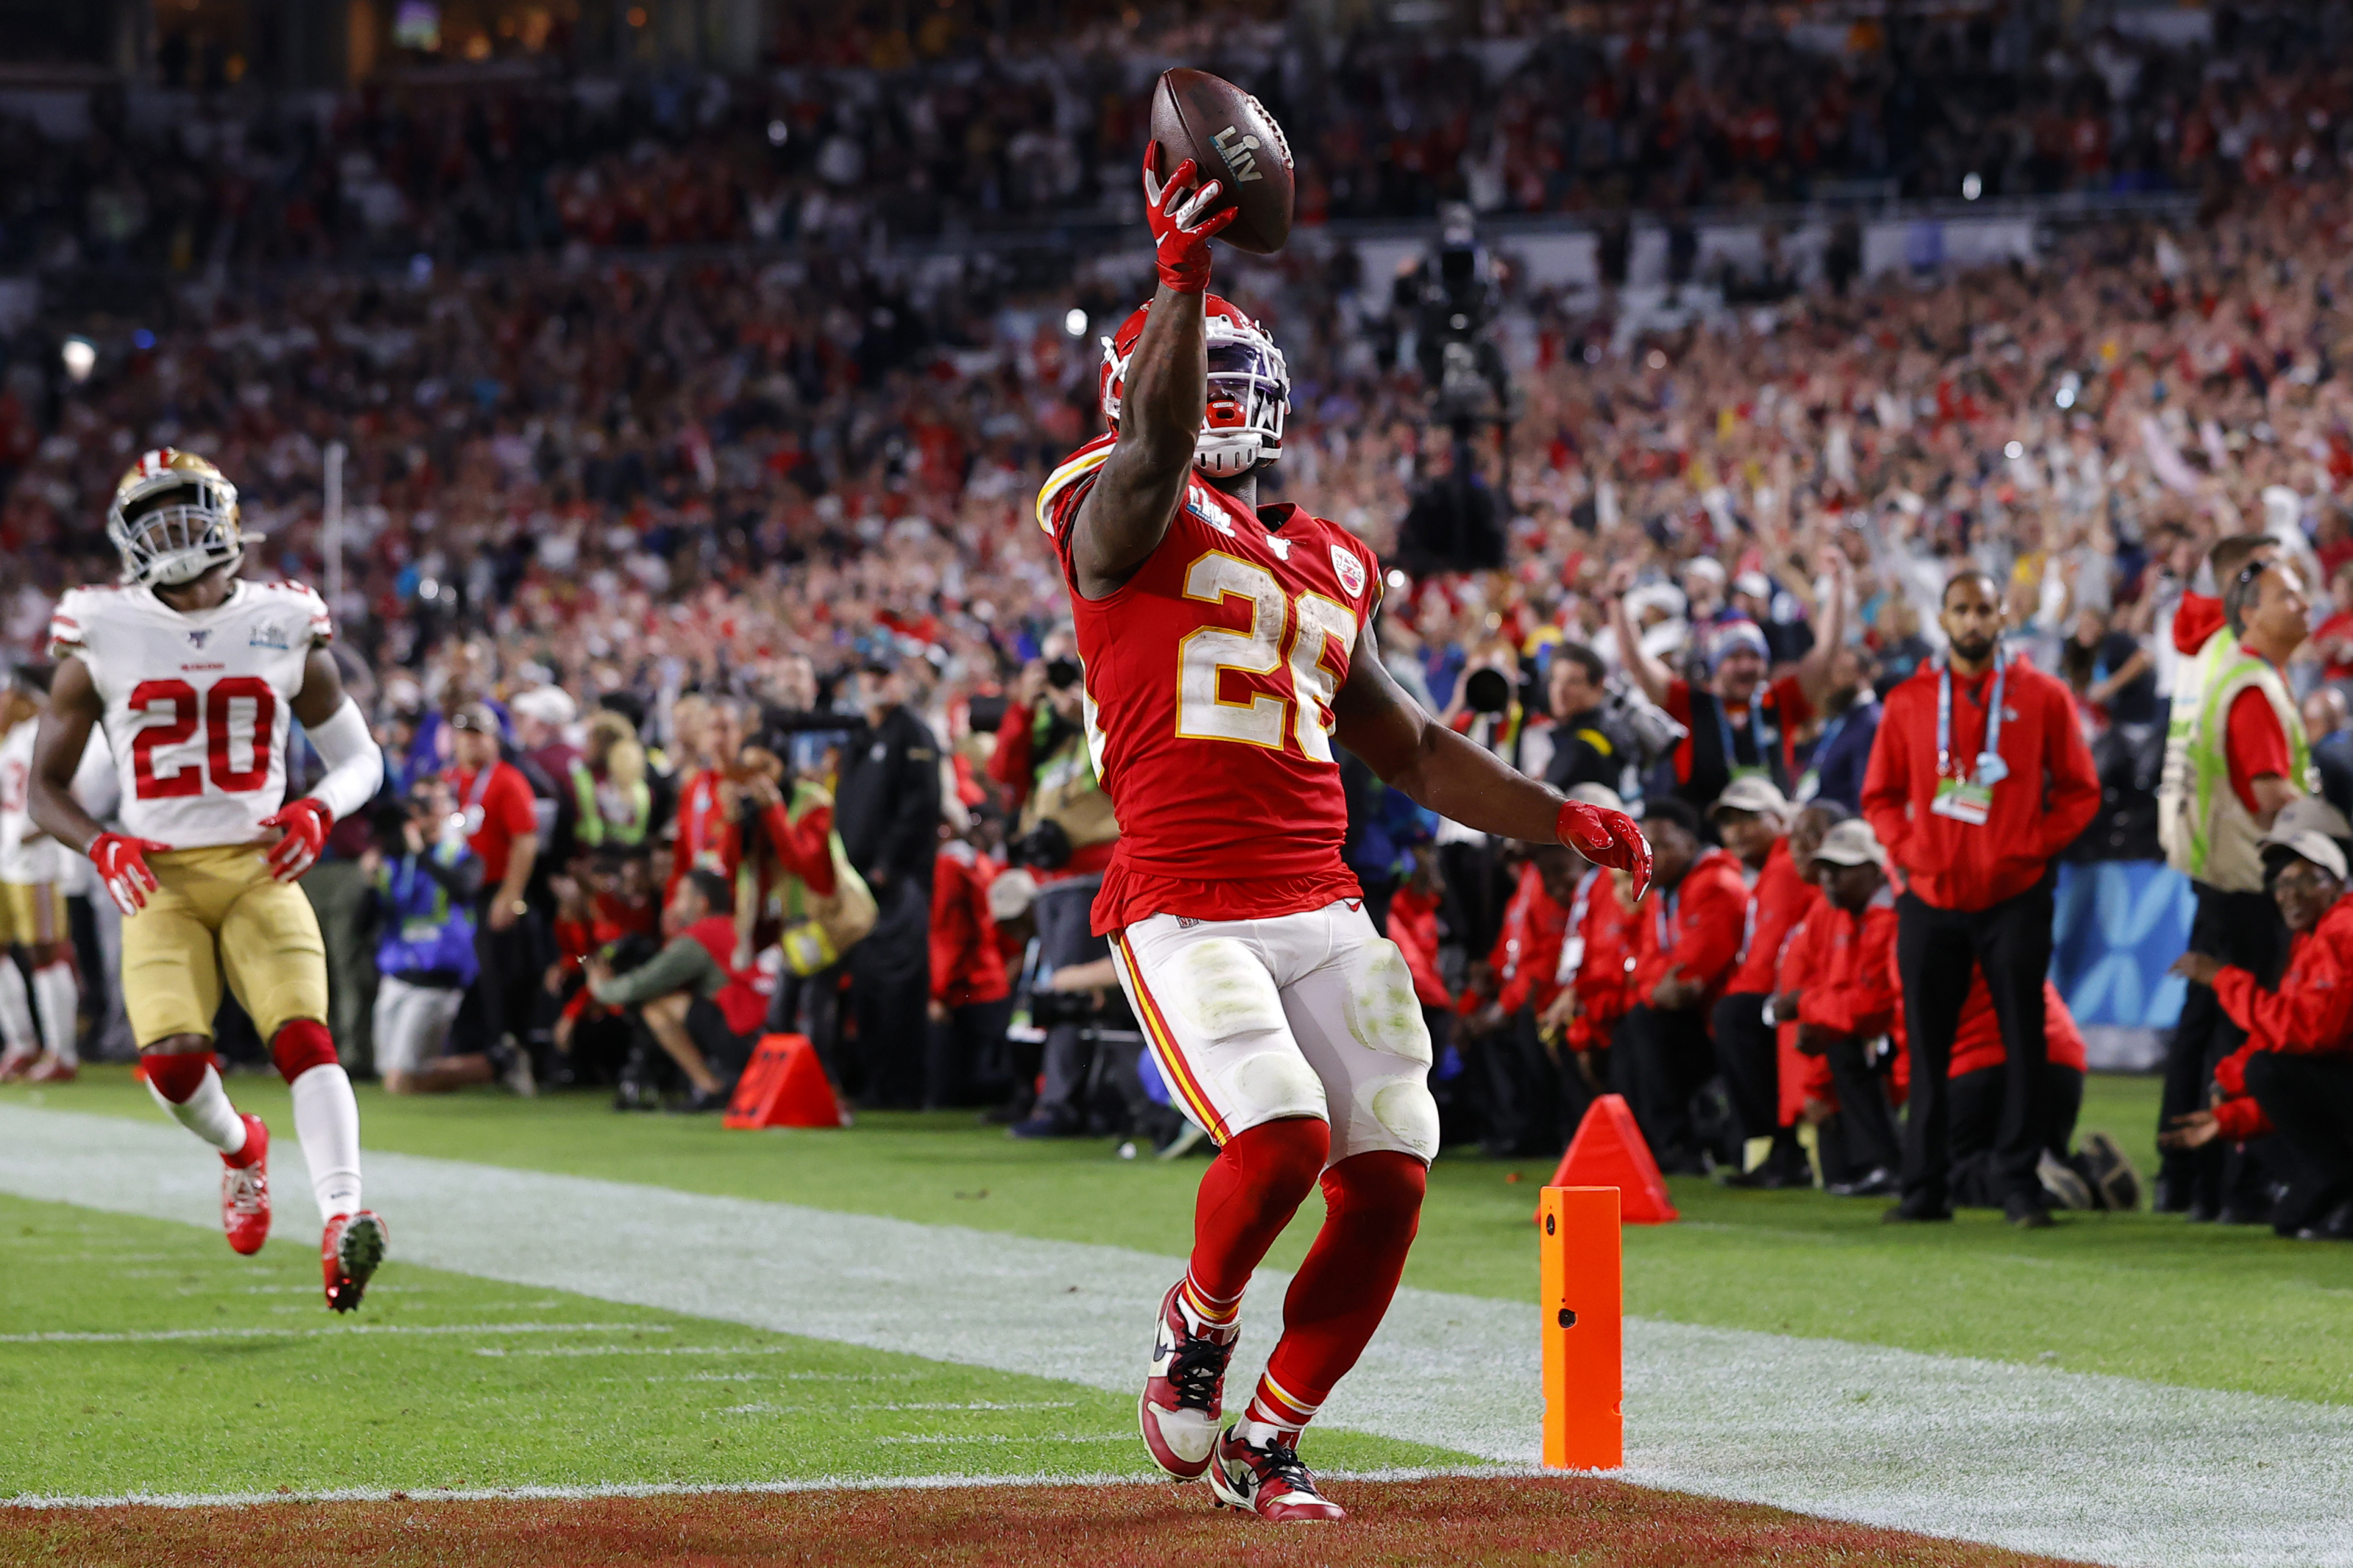 Damien Williams Provides Explanation For His Decision To Sit Out The Season